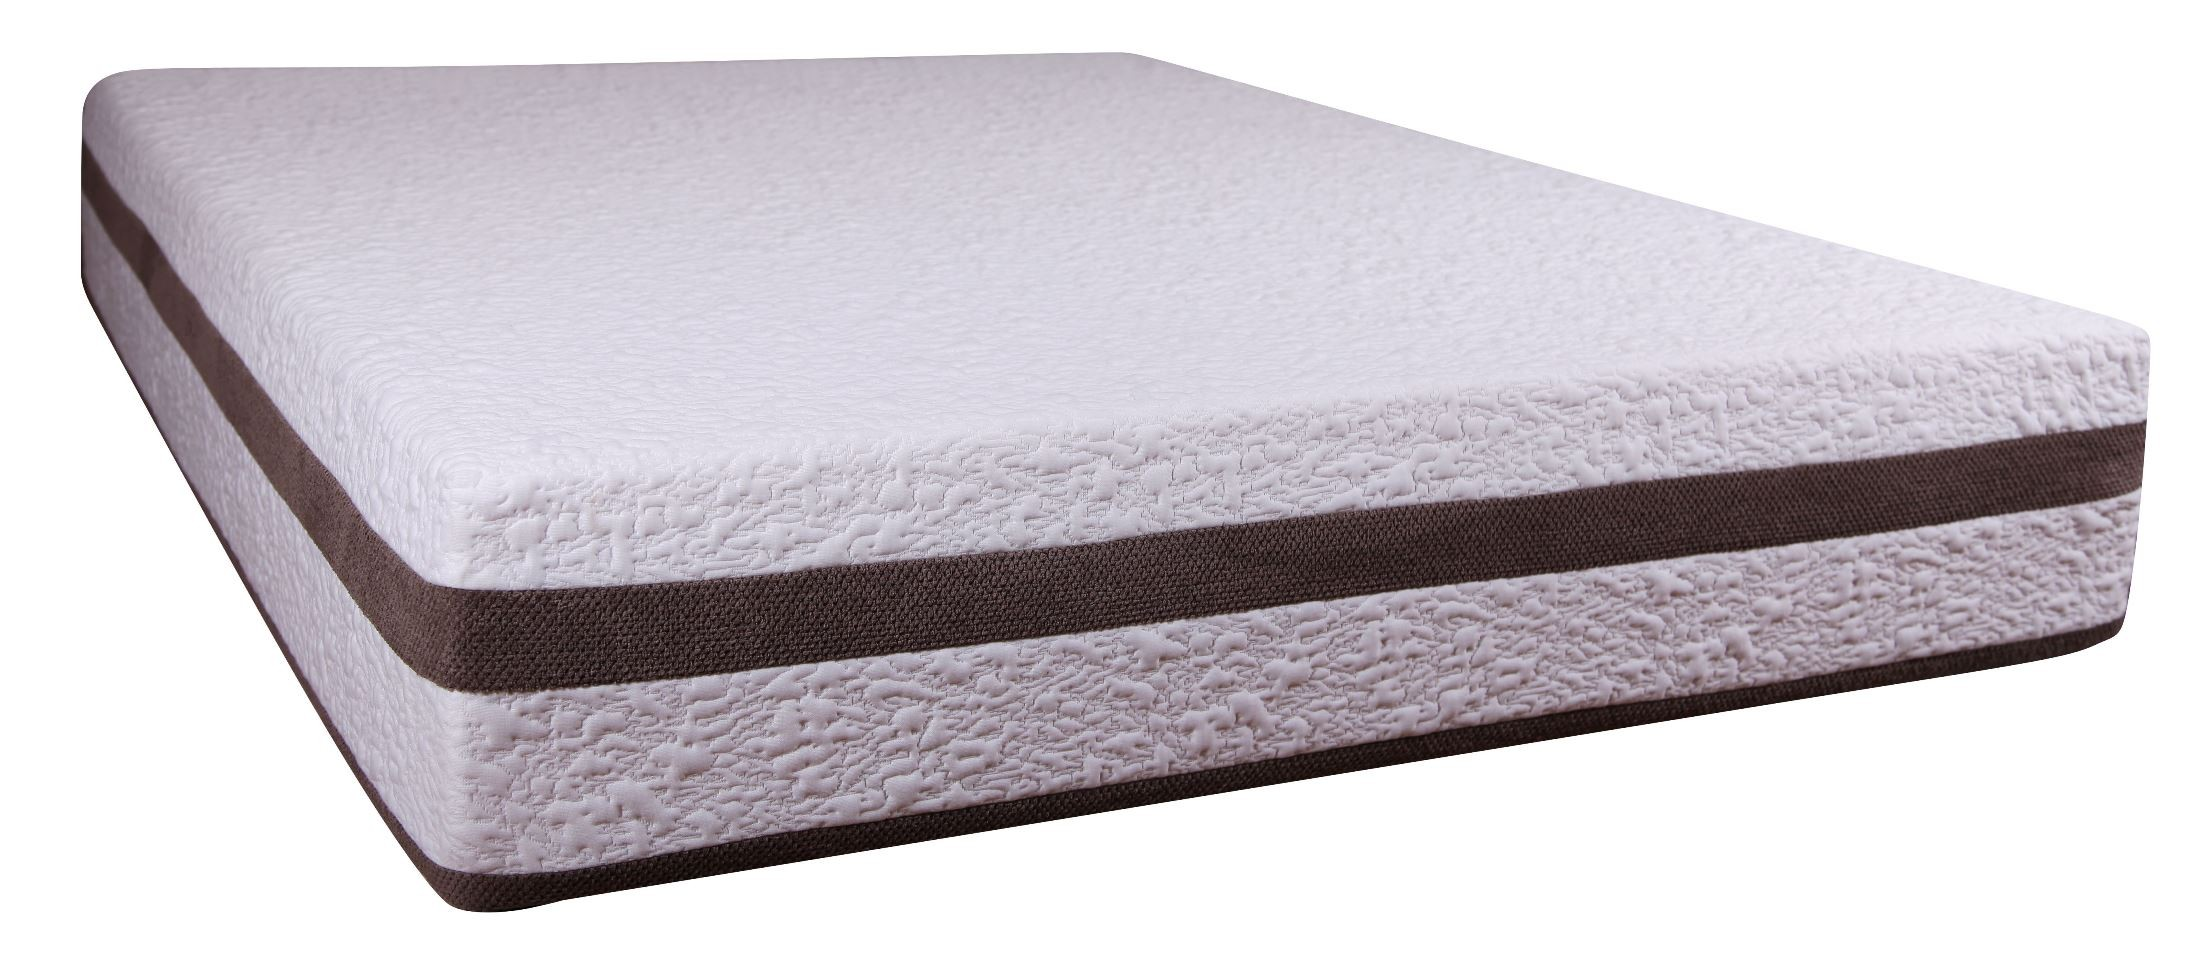 Nova 11 5 Memory Foam Xl Twin Size Mattress From